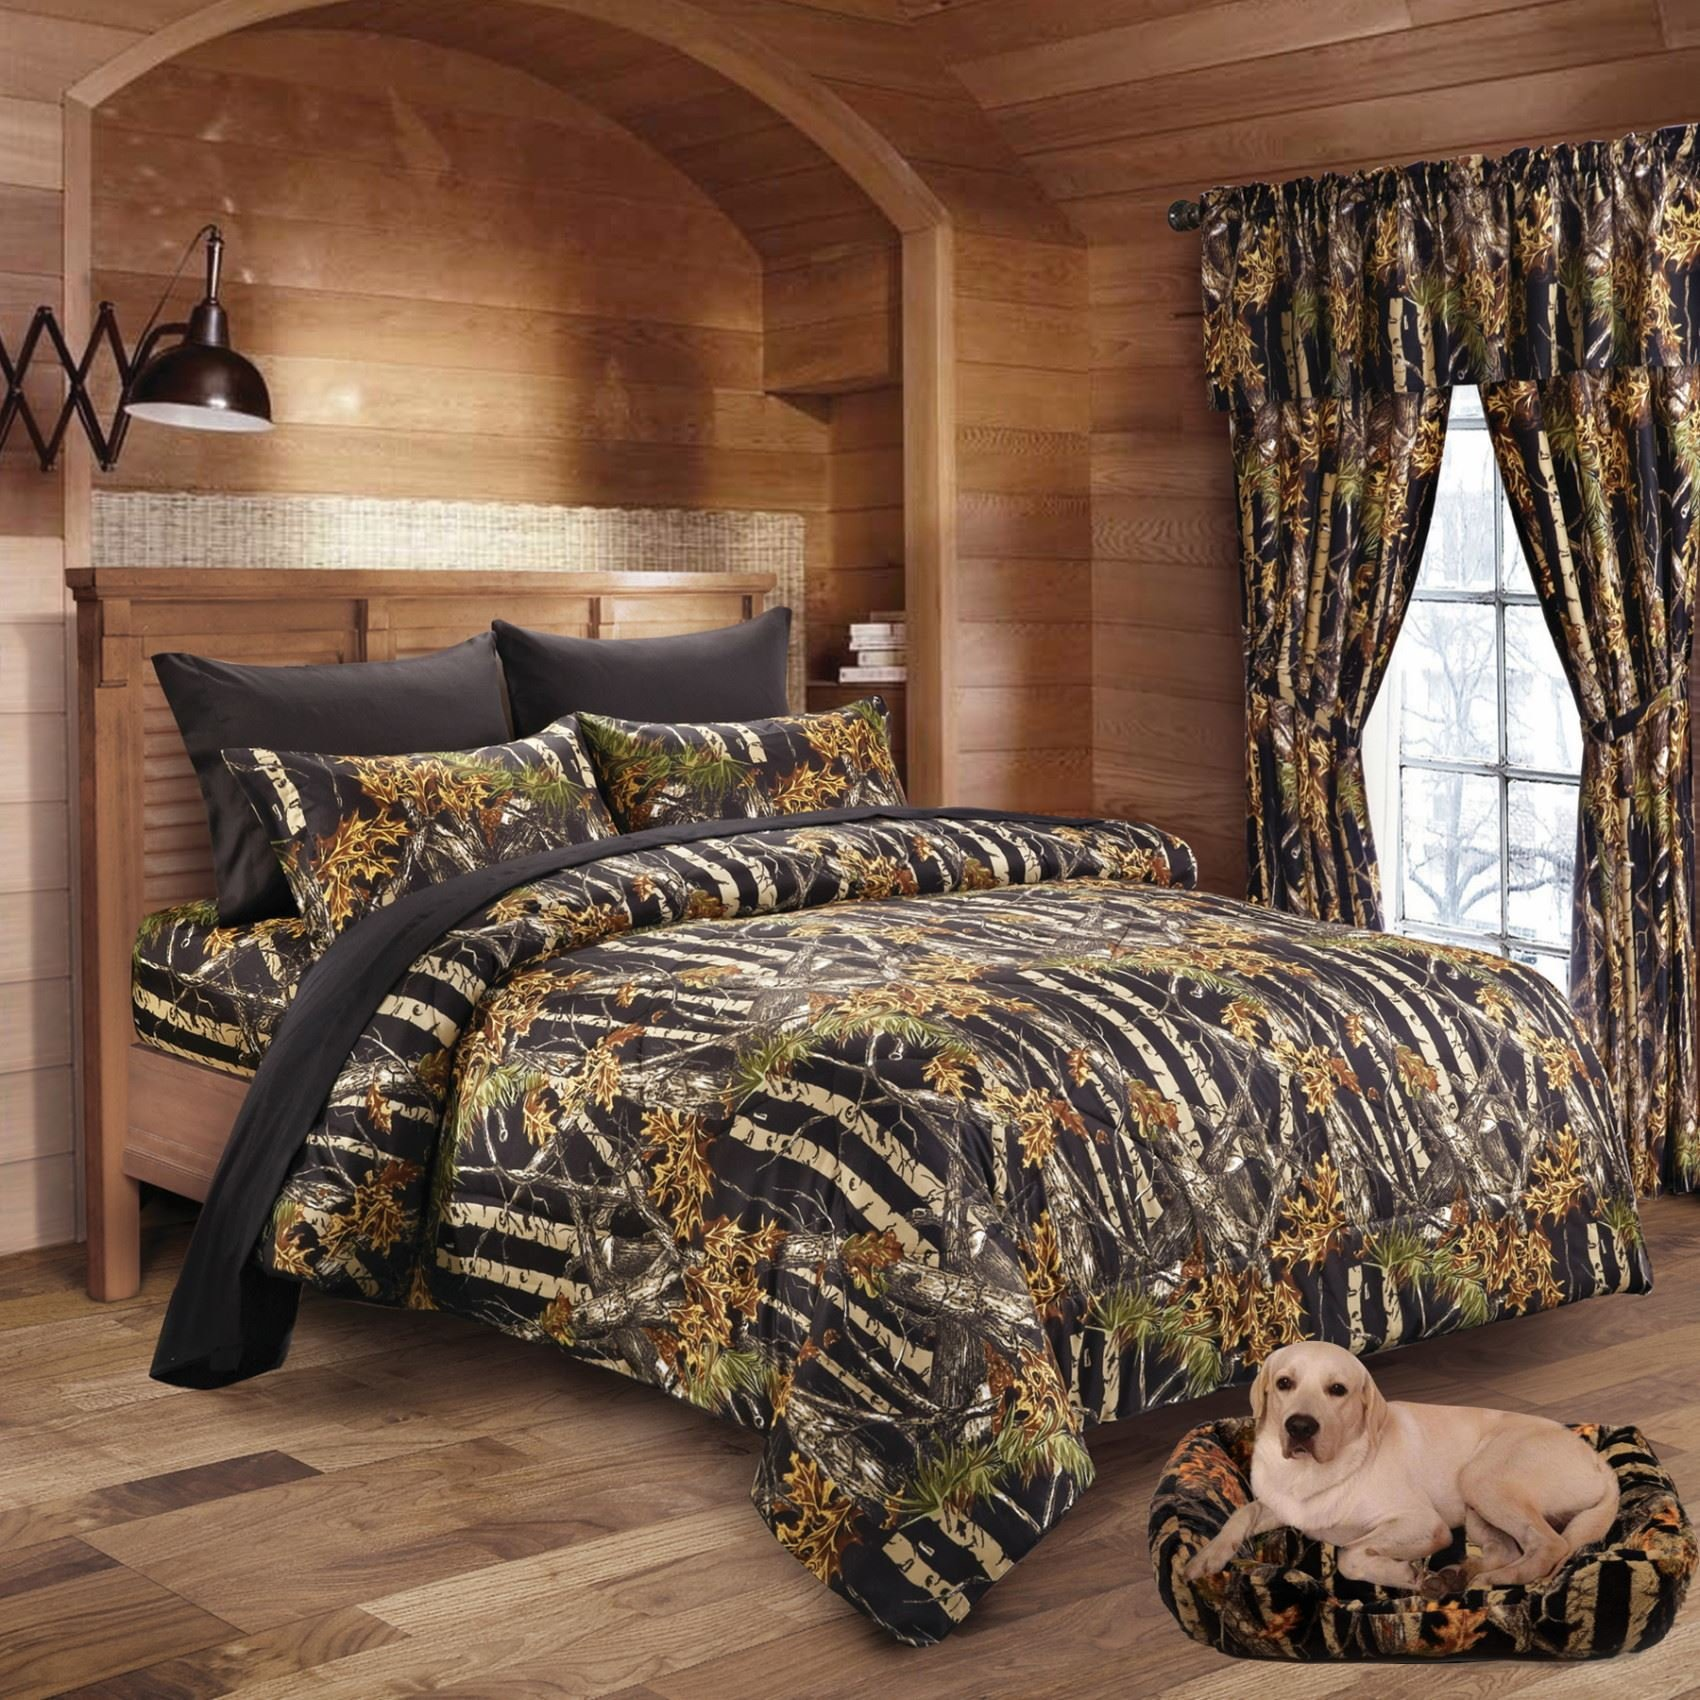 20 Lakes Hunter Camo Comforter Woodland Collection - Queen/Full